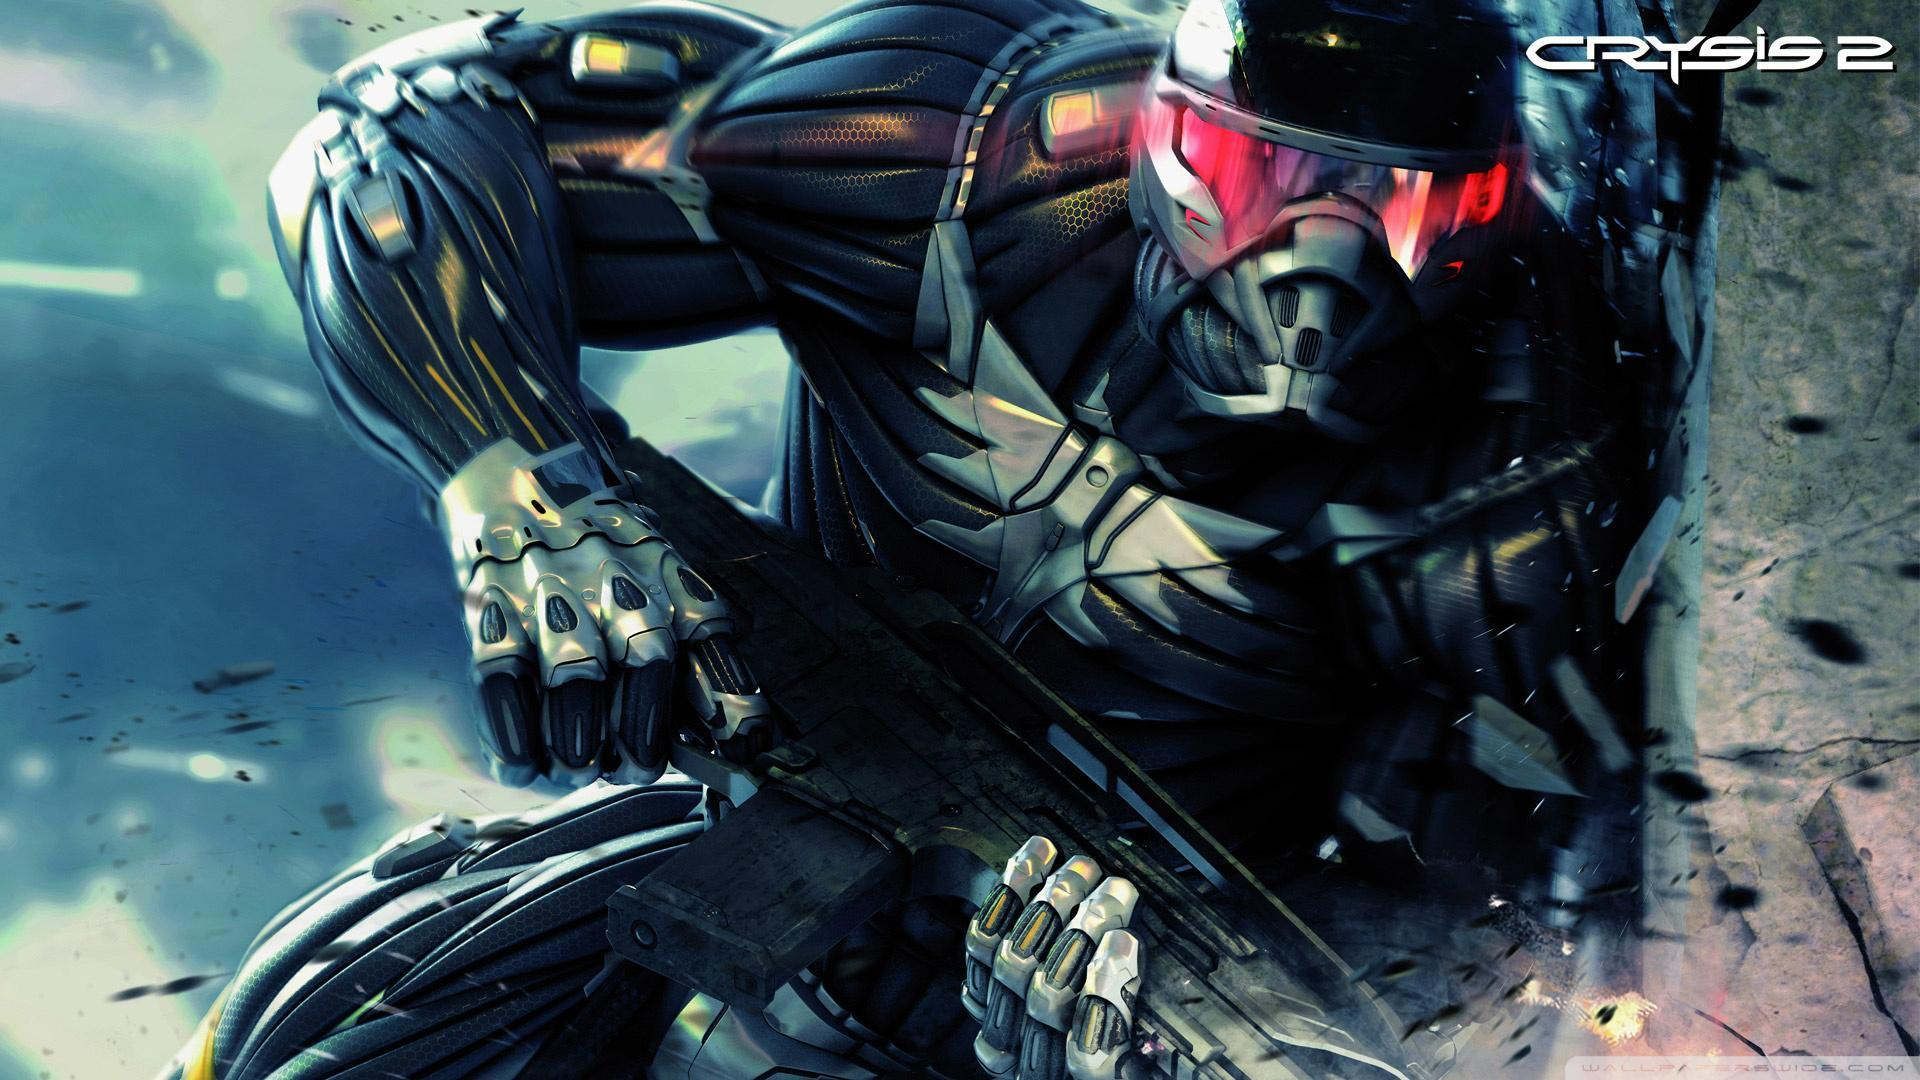 Crysis 3 Wallpapers 16 384023 High Definition Wallpapers